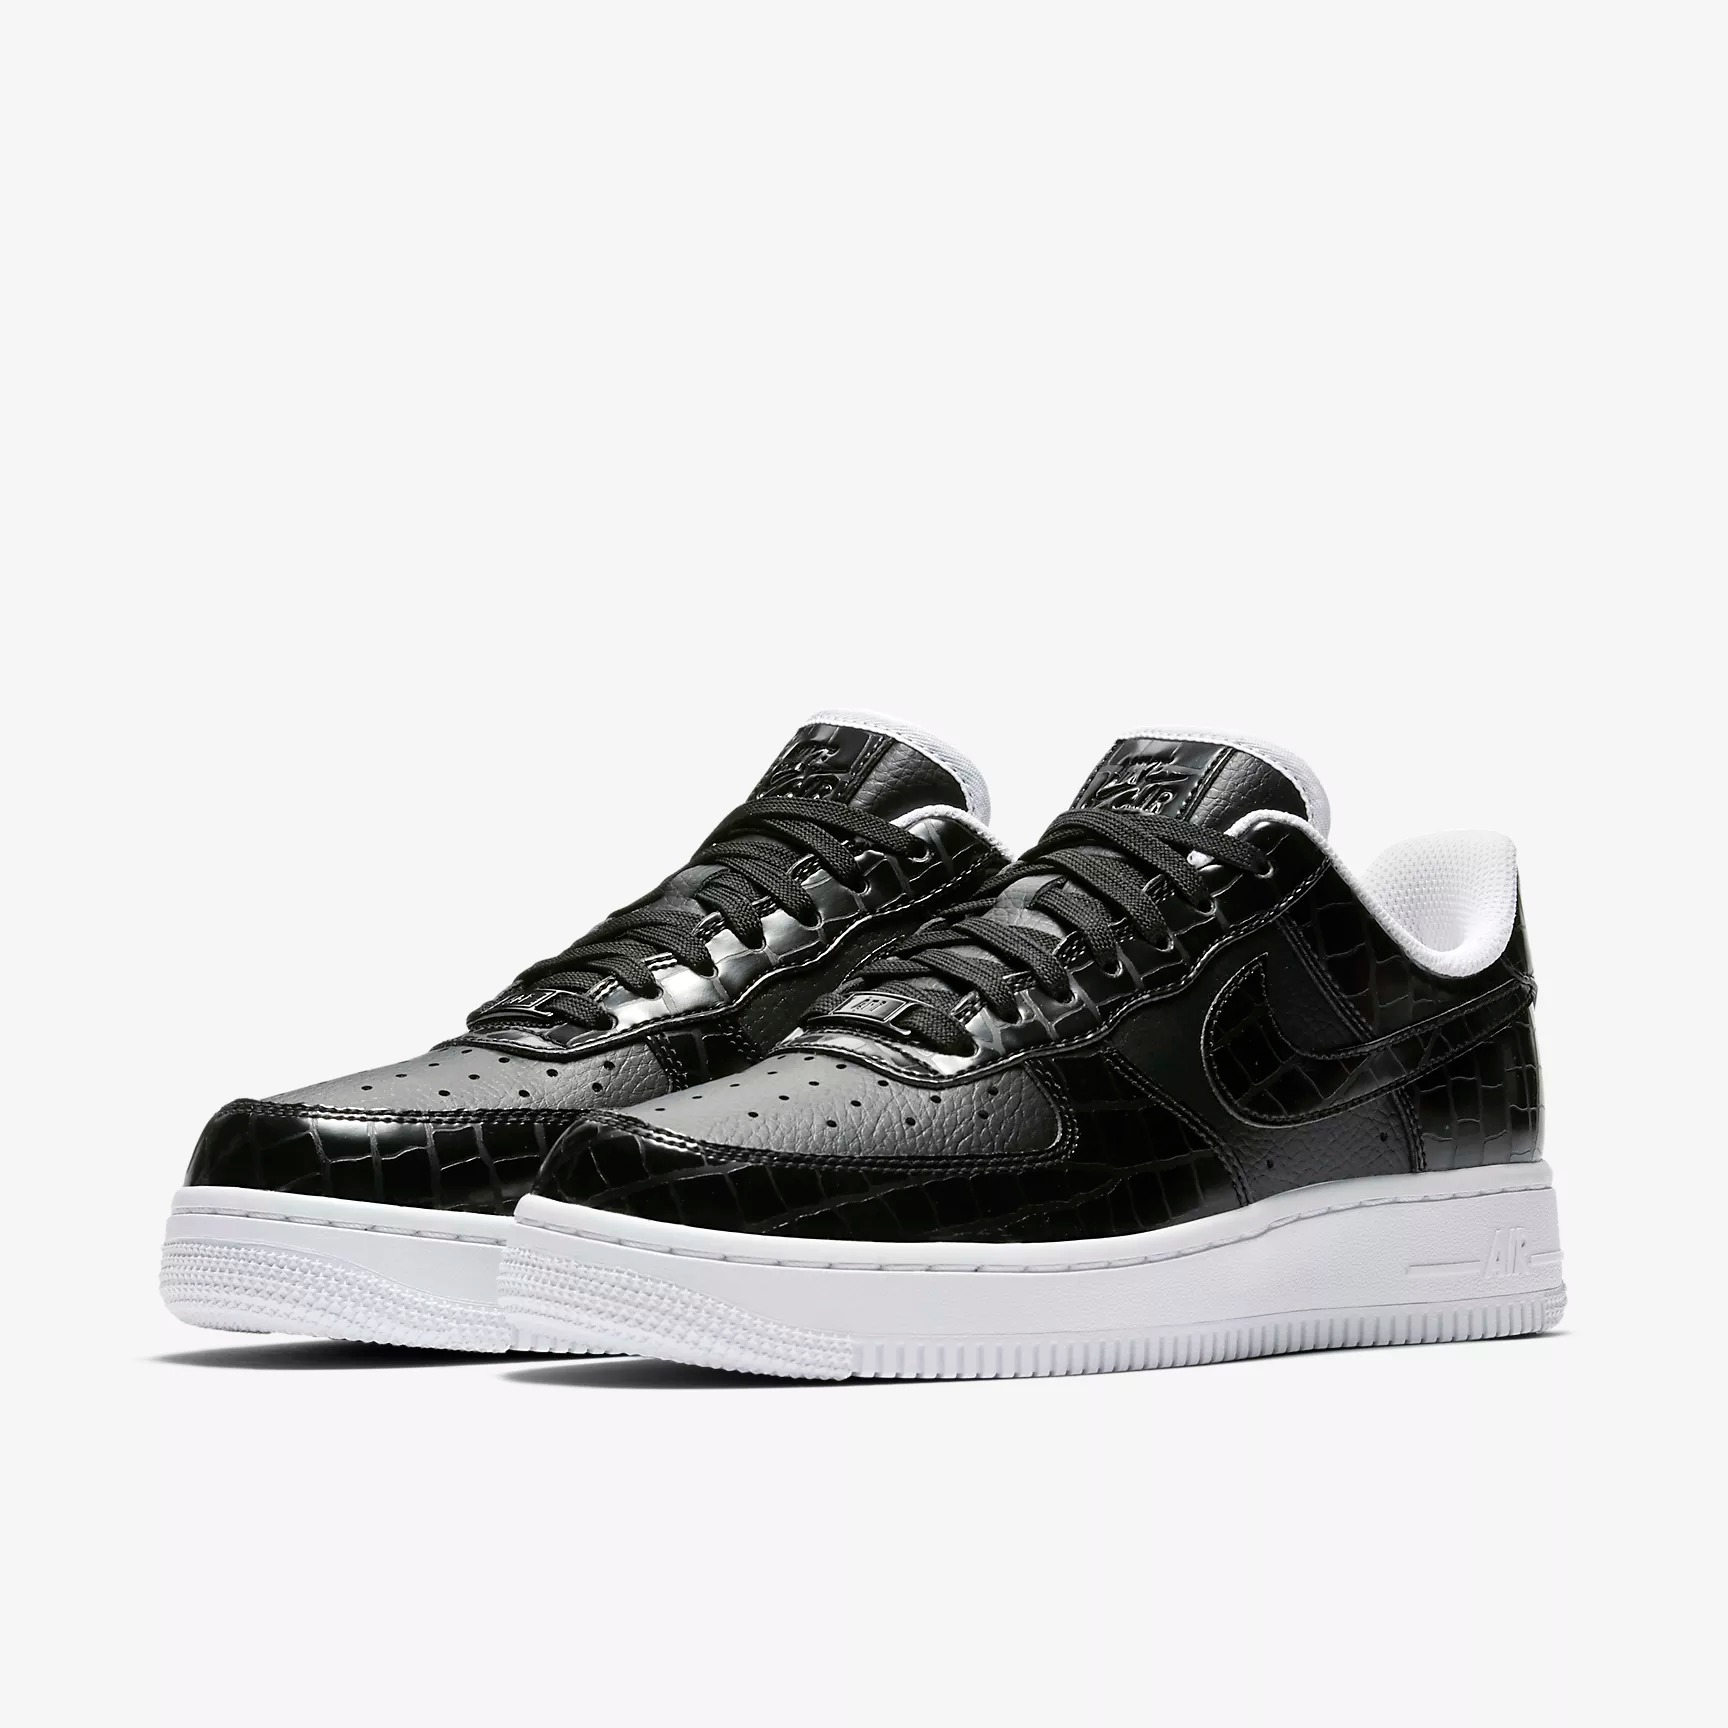 quality design 50a09 45efc Nike Wmns Air Force 1  07 Essential Sneakers - SPORT SHOES Lifestyle Shoes    Sneakers - Superfanas.lt